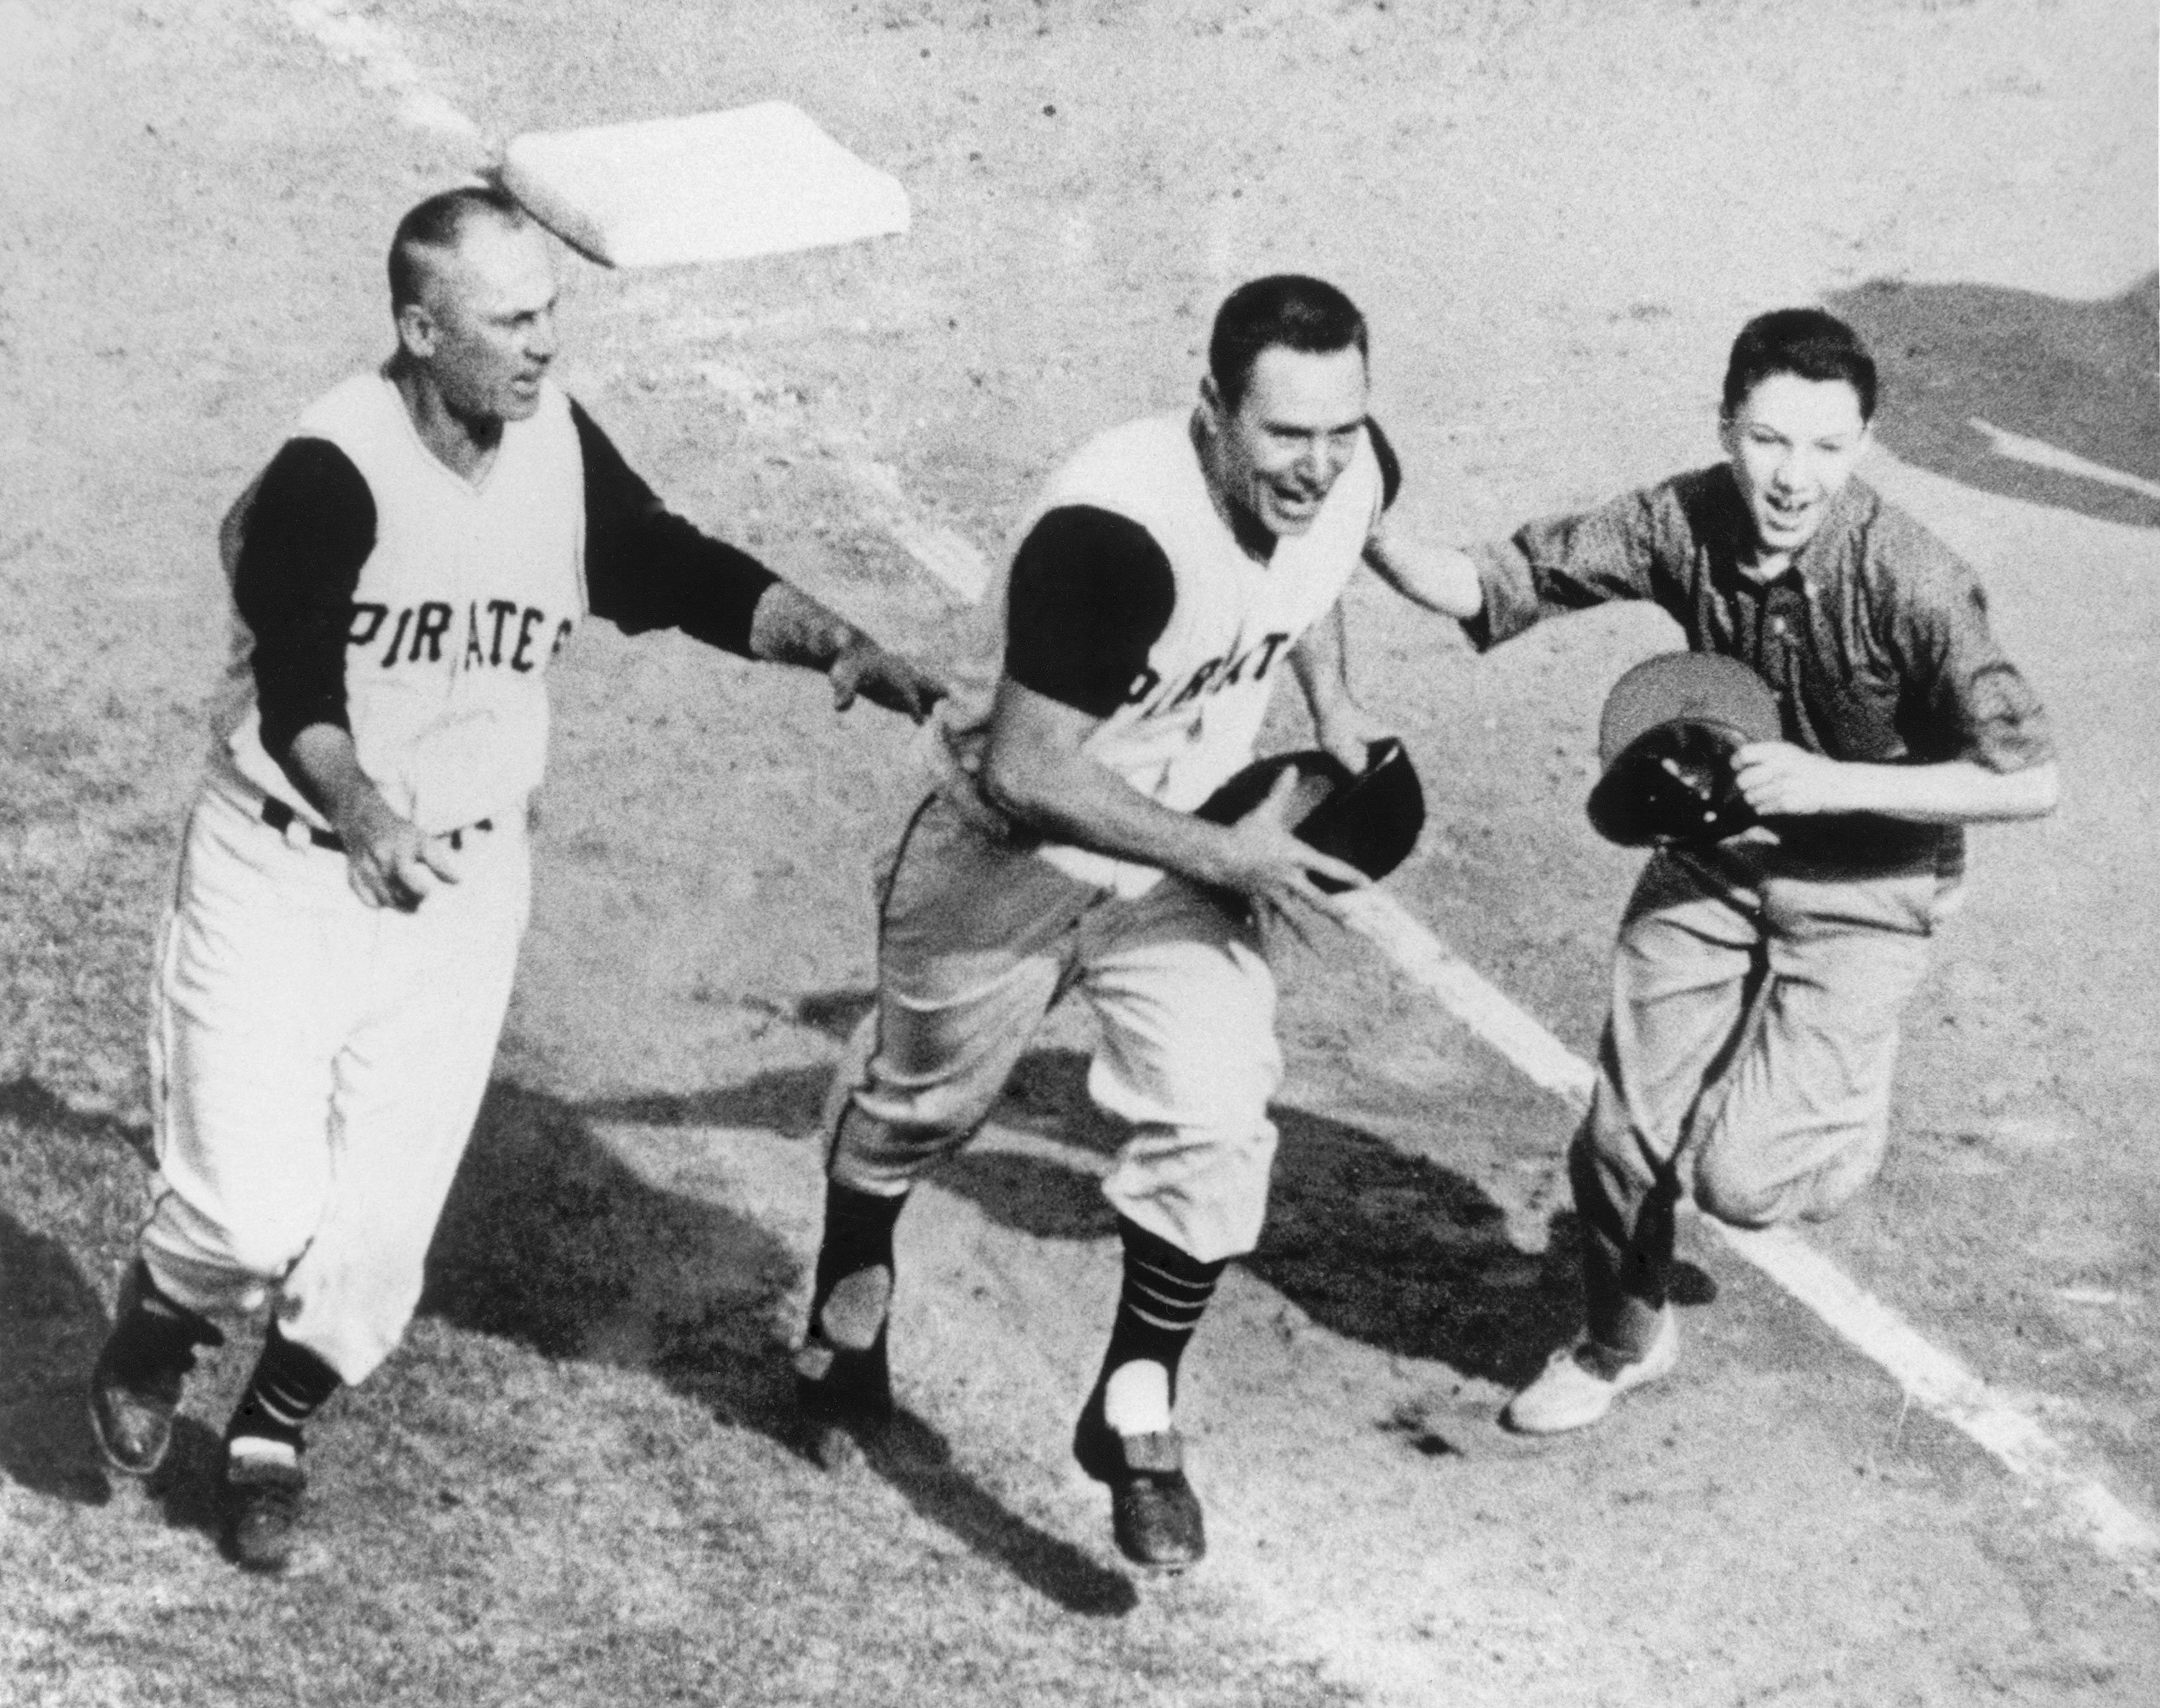 Oct. 13, 1960: Bill Mazeroski of the Pittsburgh Pirates                                   delivers the only Game 7 walk-off home run in the history of the World Series against the Yankees to win the World Series.